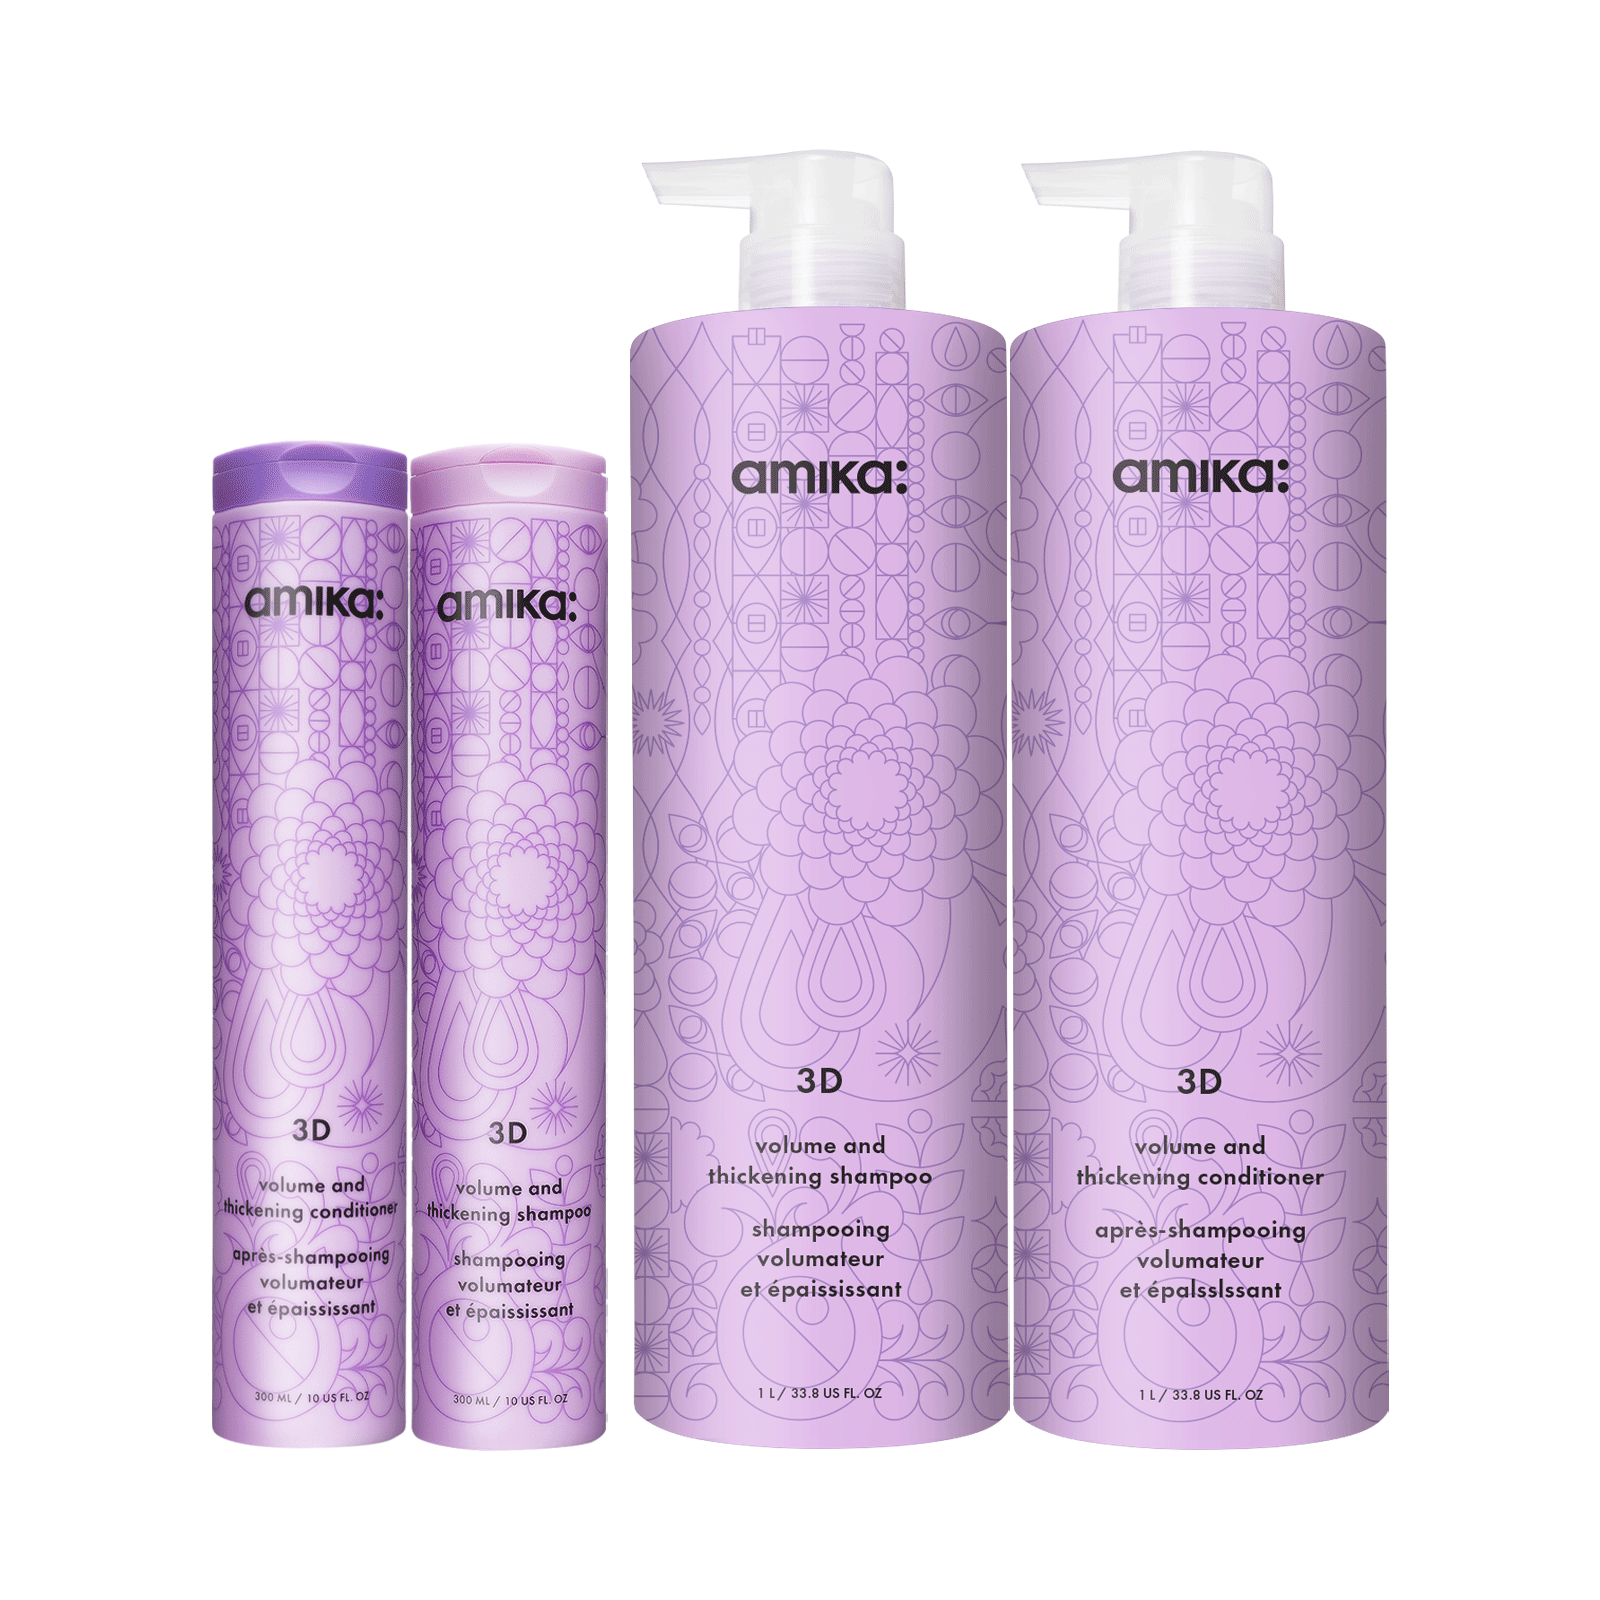 3D Volume & Thickening Shampoo, Conditioner Salon Offer